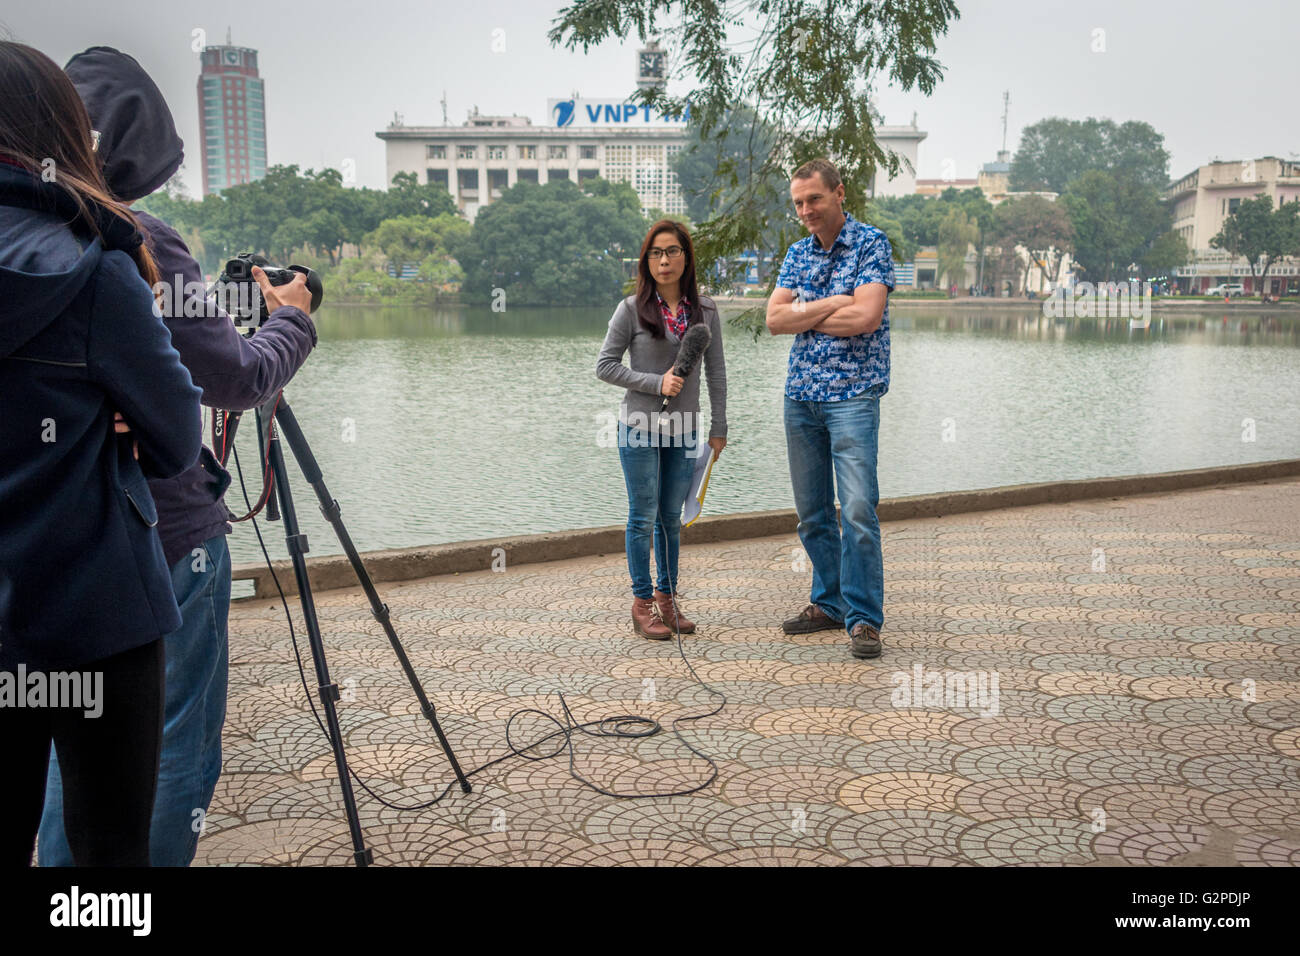 Western male tourist being interviewed by young local Vietnamese woman filming next to the Hoan Kiem Lake, Hanoi, - Stock Image